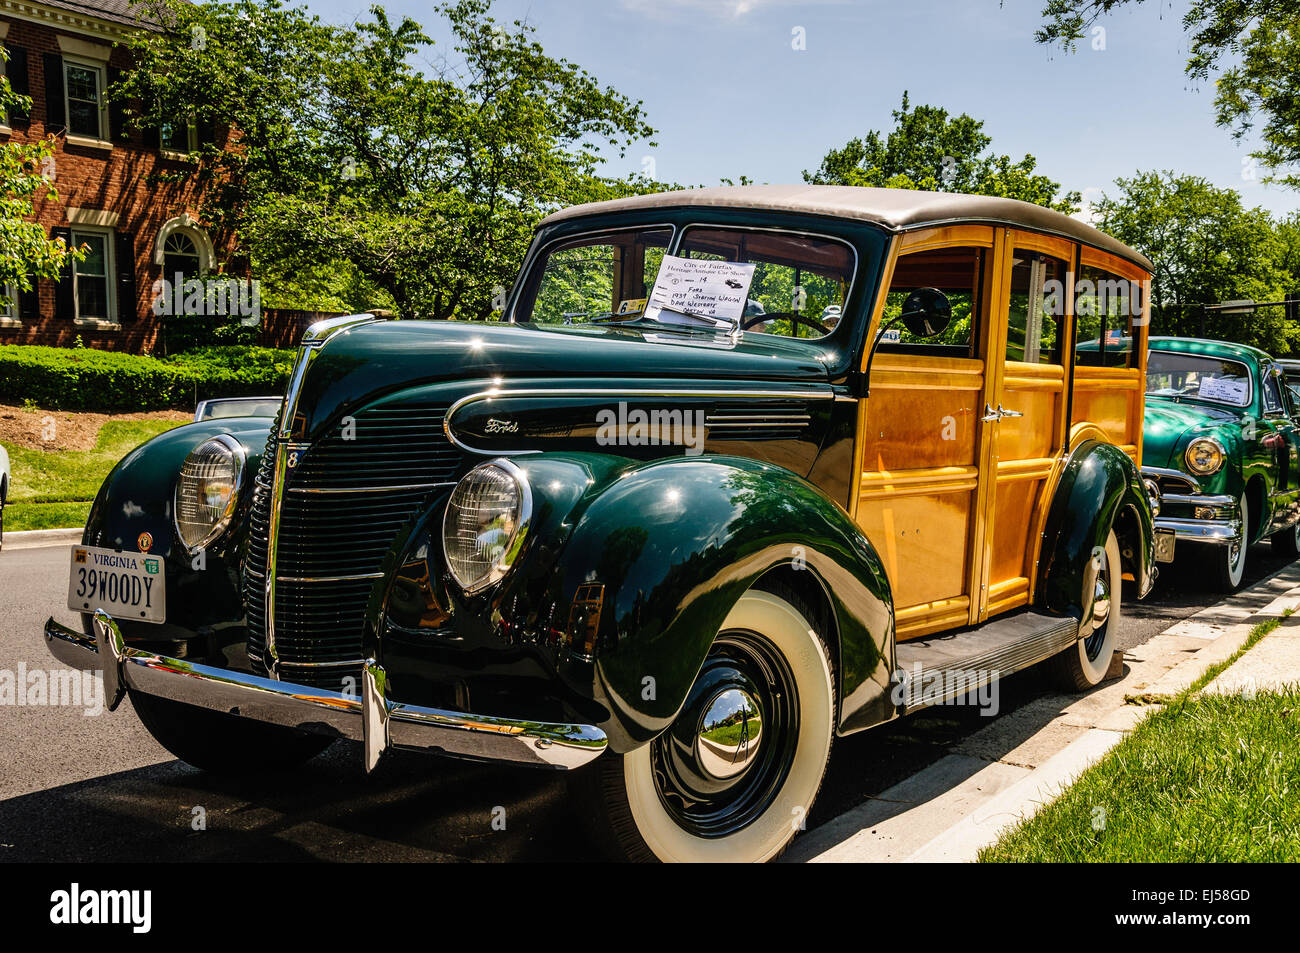 Old Woody Wagon Car Stock Photos & Old Woody Wagon Car Stock Images ...